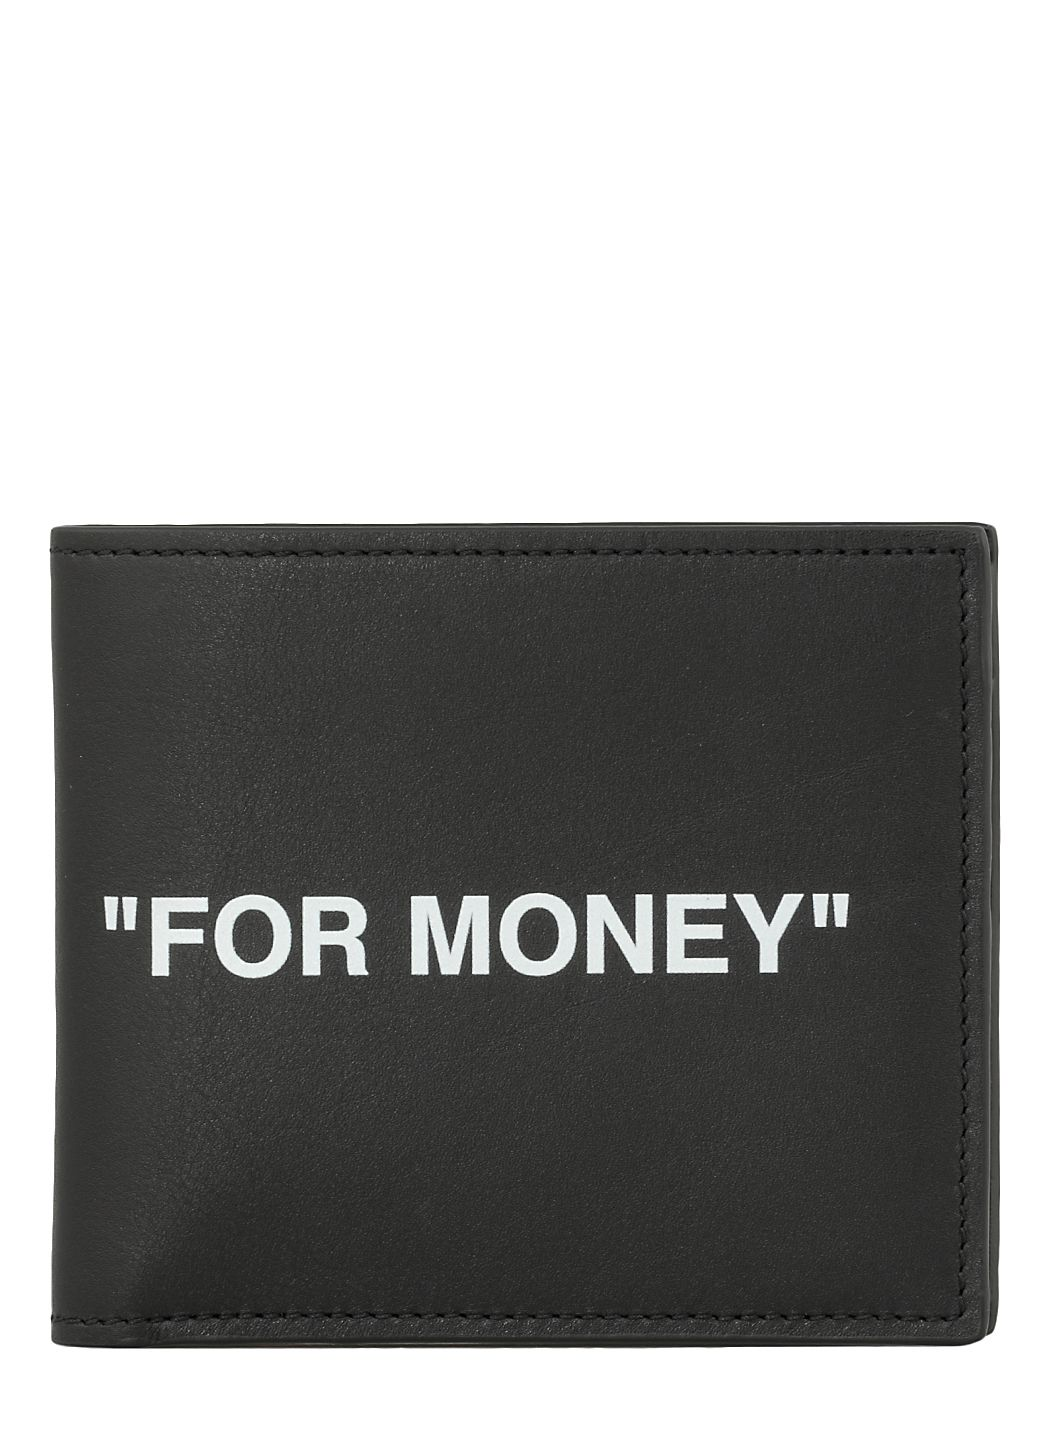 Quote Wallet